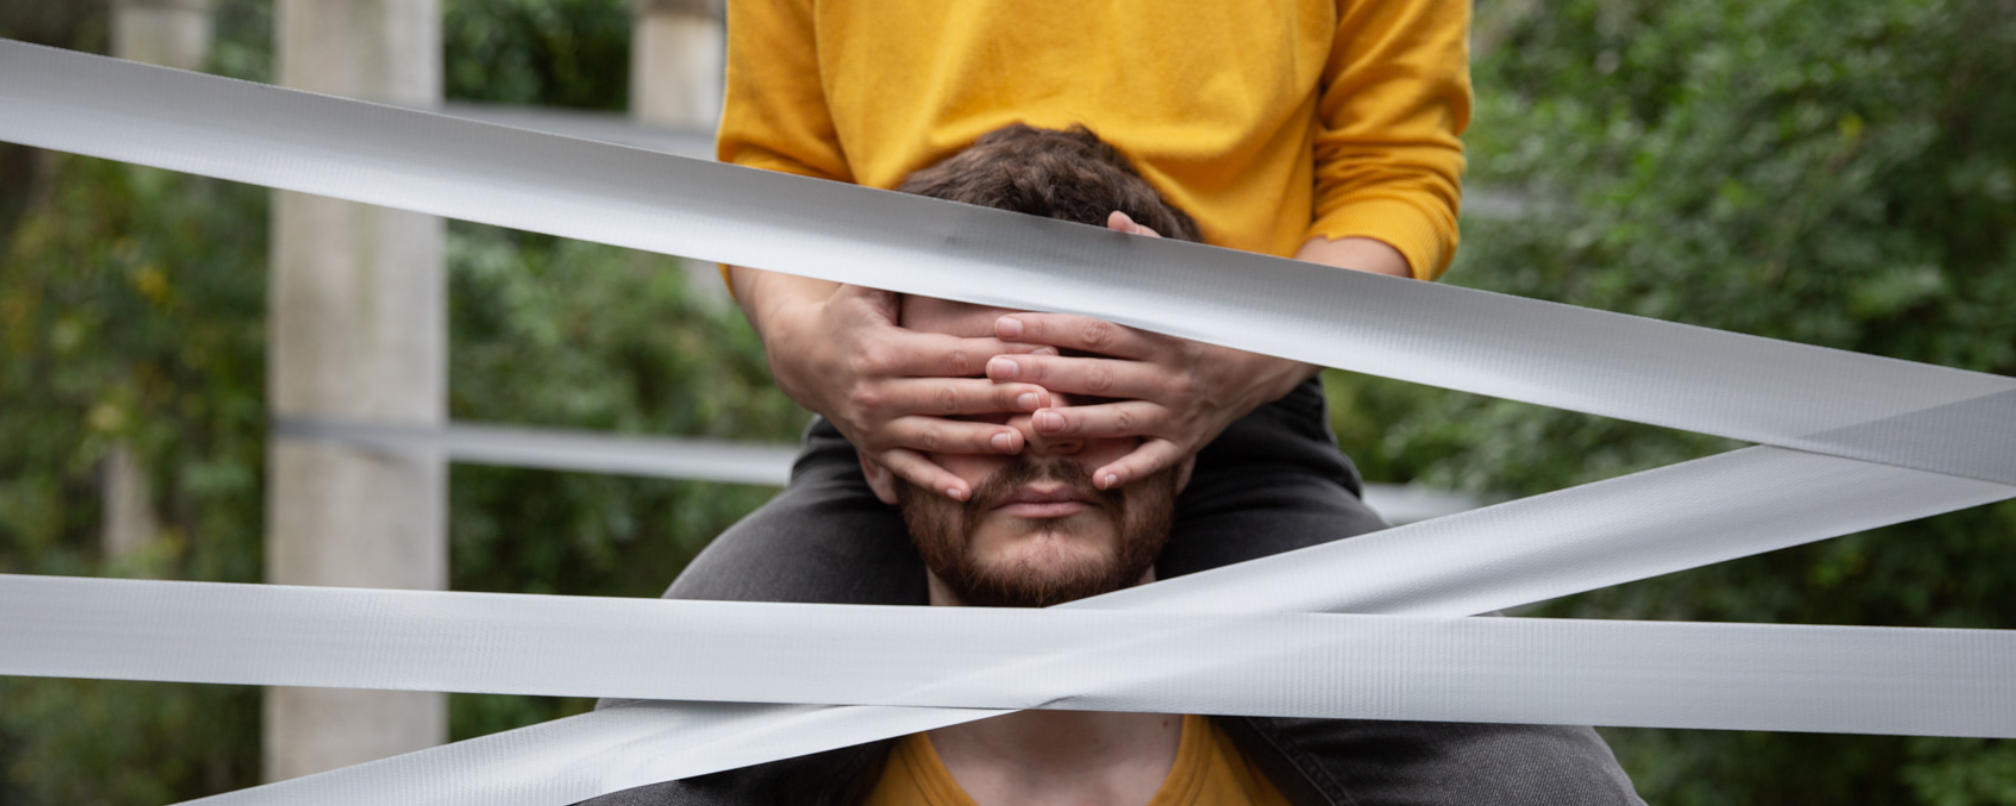 Man with a person on his shoulders, covering his eyes with their hands and gaffer tape across the screen.